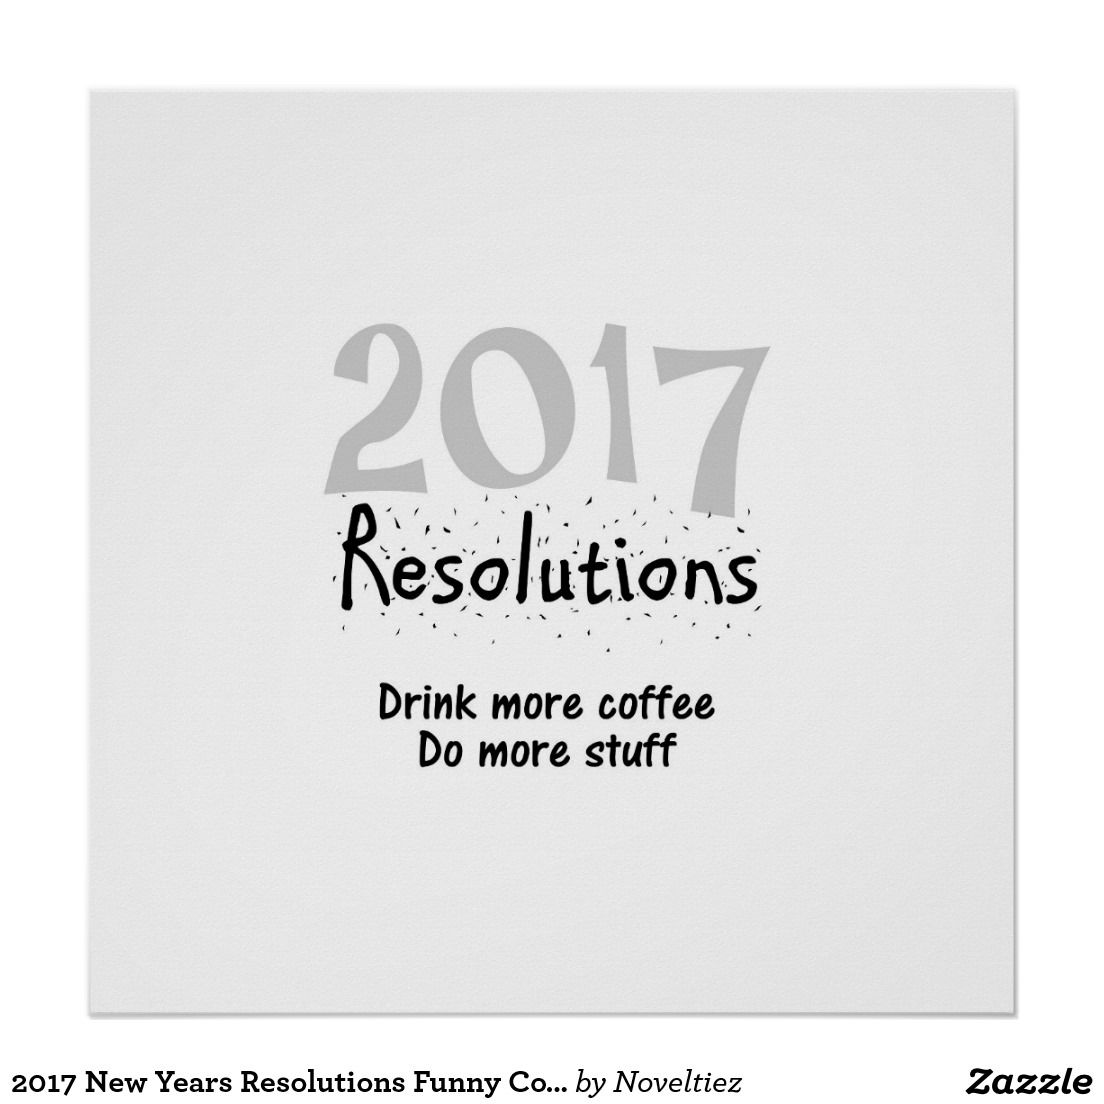 Coffee Quotes Funny 2017 New Years Resolutions Funny Coffee Quote Poster  Gift Ideas